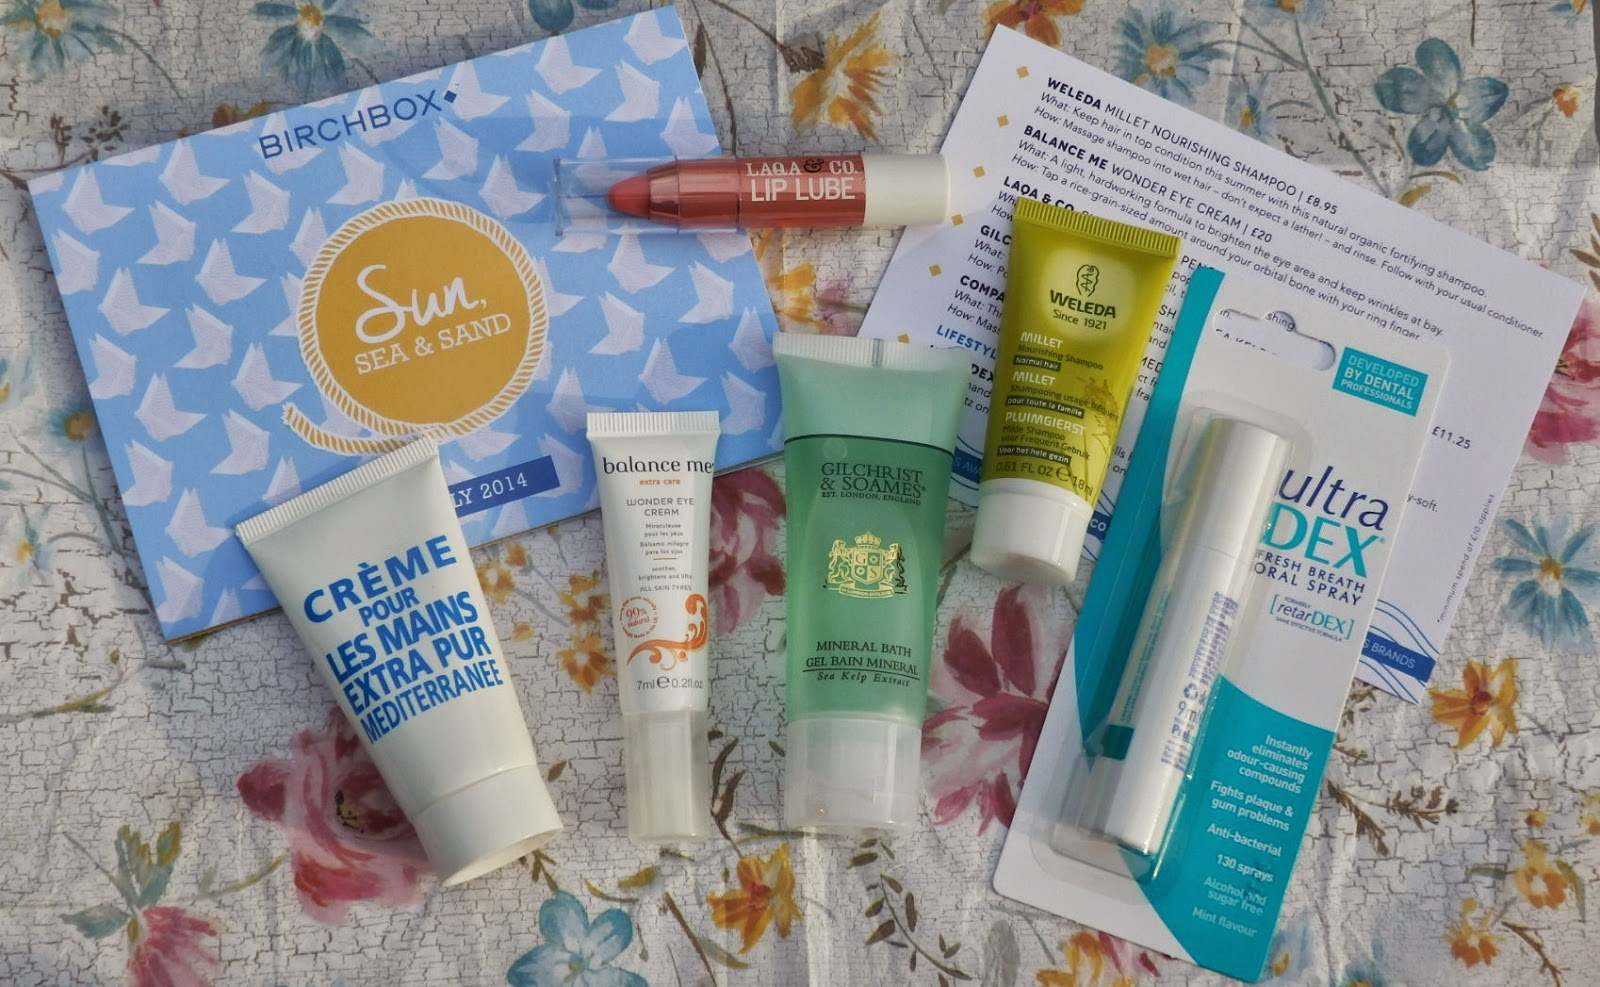 Birchbox Review - July 2014